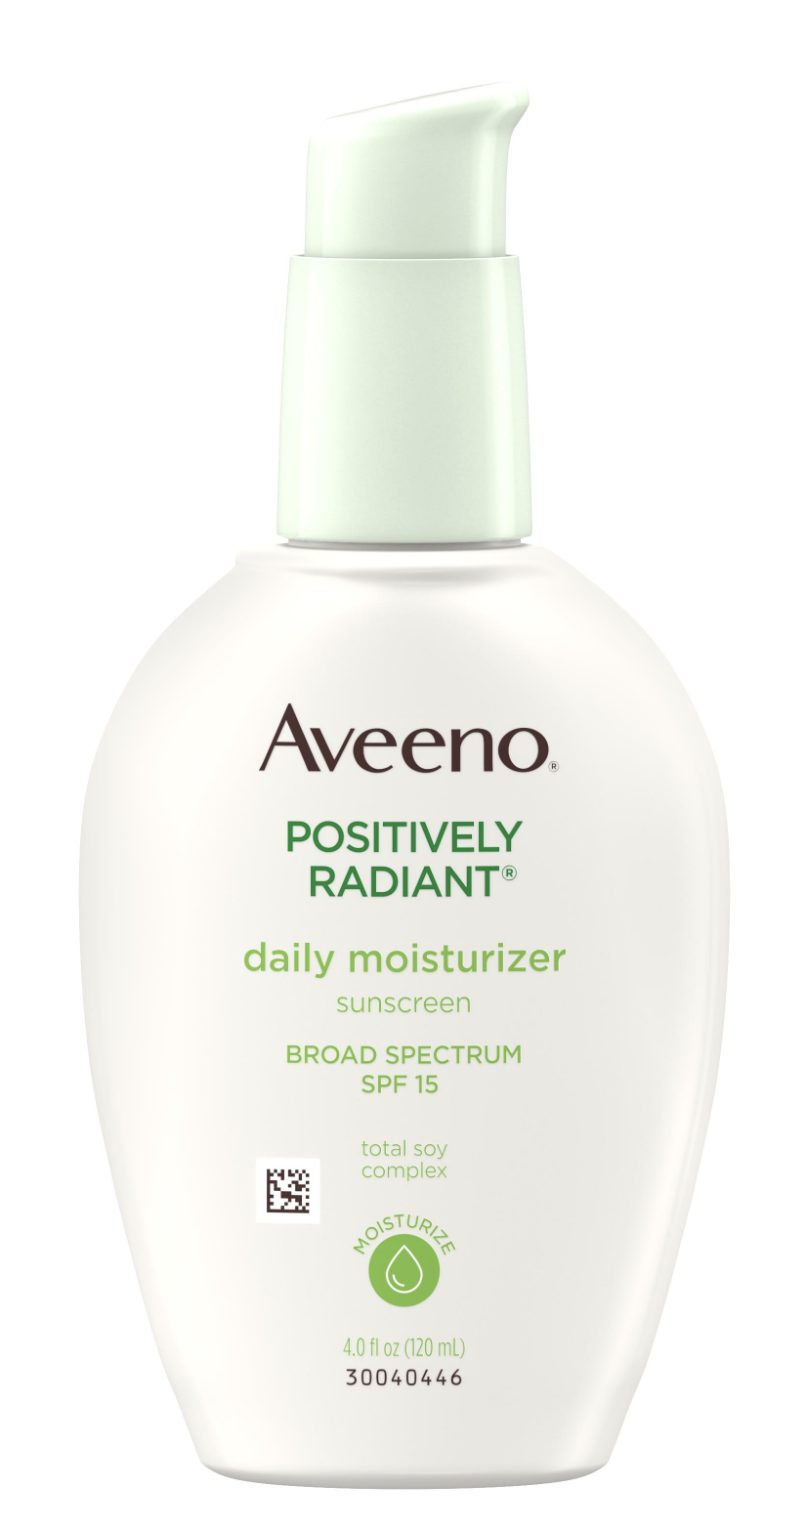 Aveeno Daily Moisturizer for Best Drugstore Skincare Products